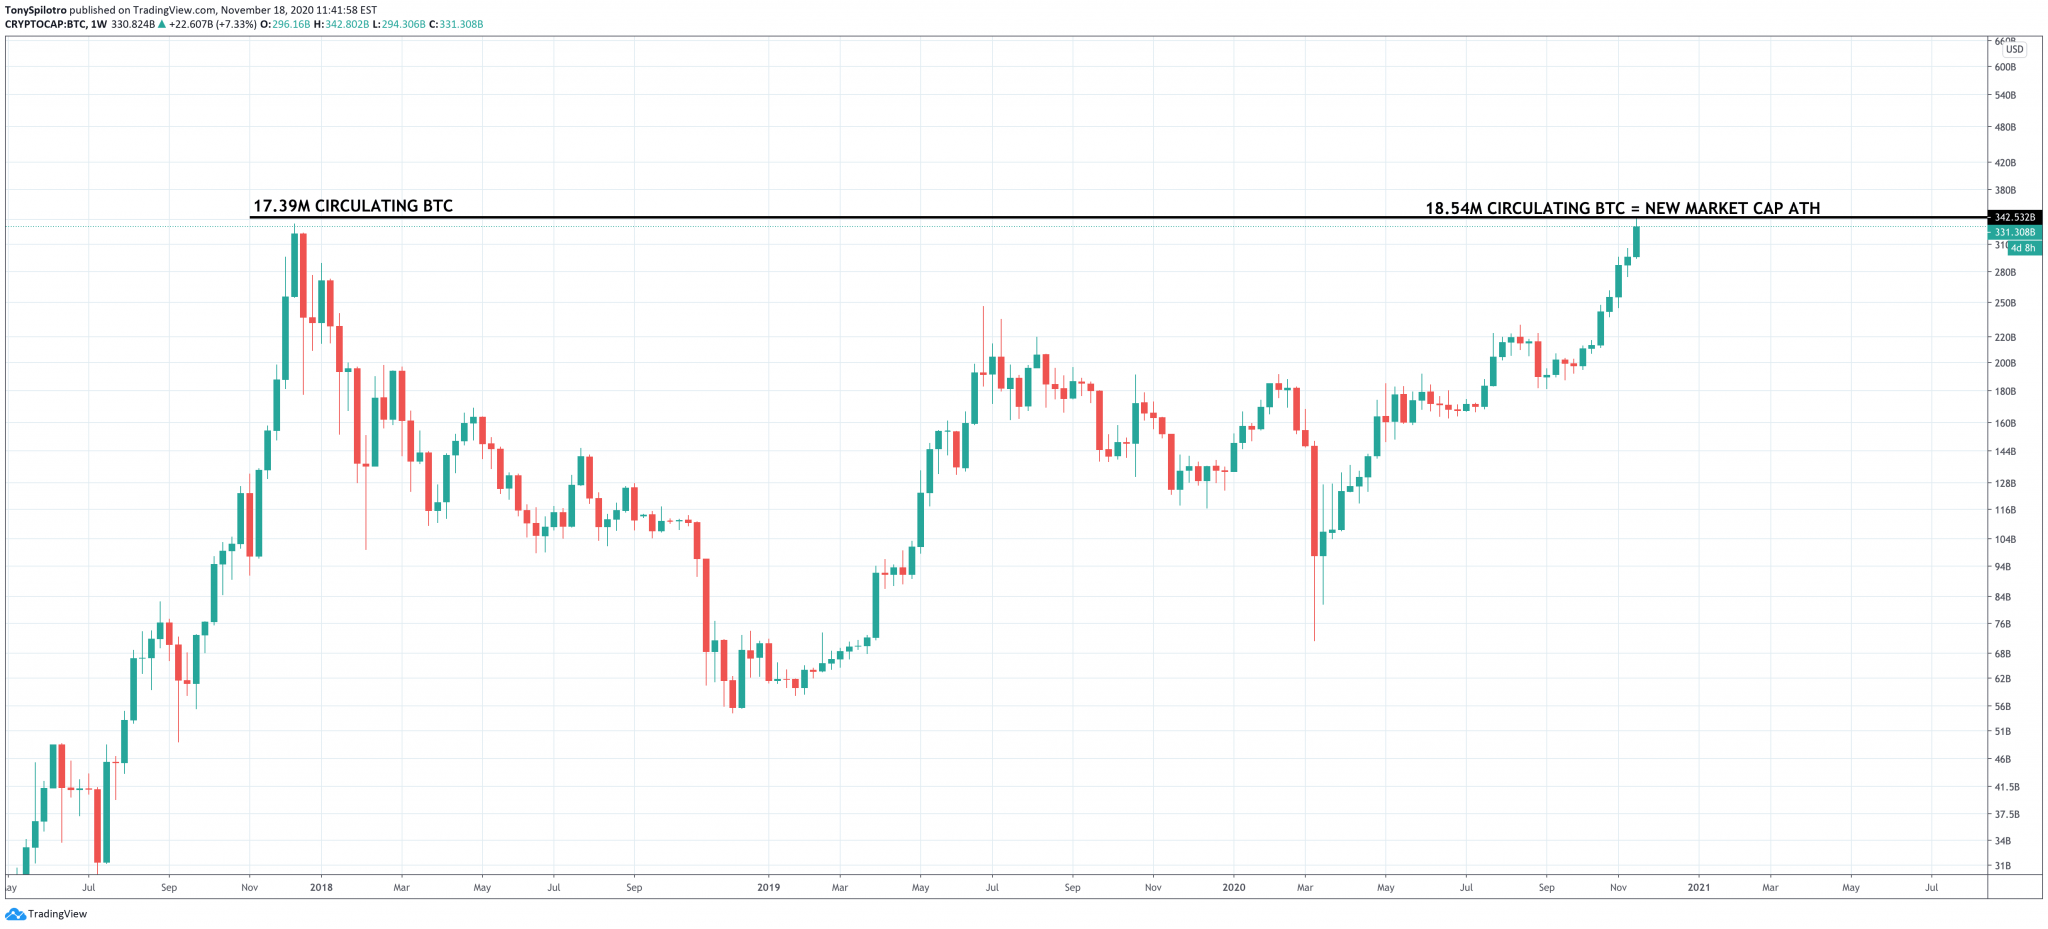 Bulls In Control: Total Bitcoin Market Cap Achieves New All-Time High